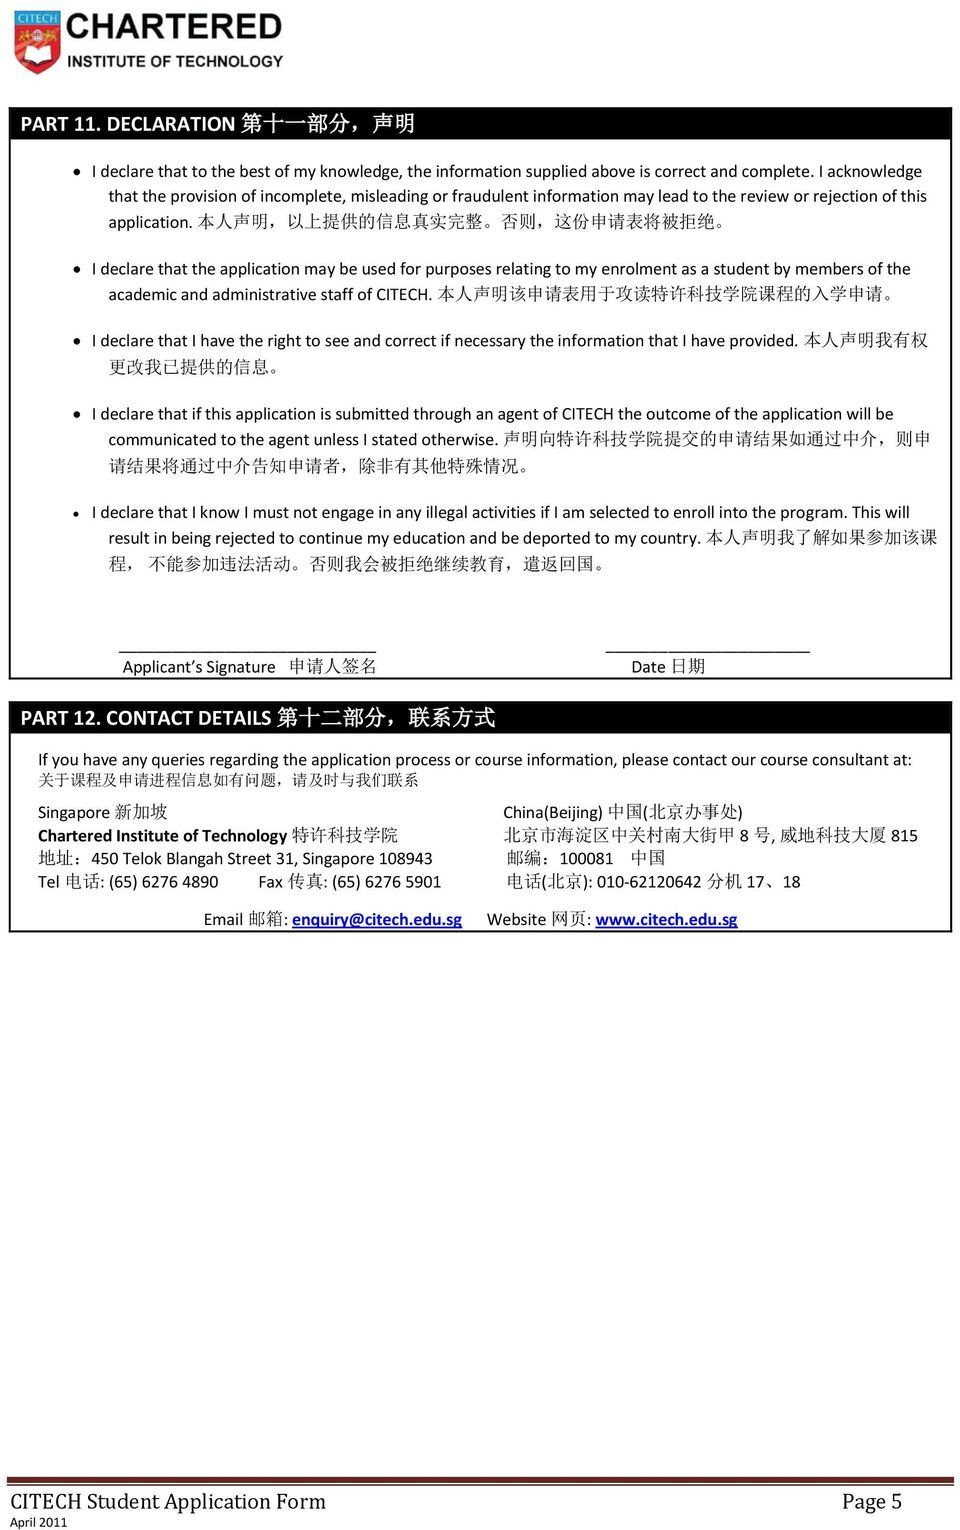 本 人 声 明, 以 上 提 供 的 信 息 真 实 完 整 否 则, 这 份 申 请 表 将 被 拒 绝 I declare that the application may be used for purposes relating to my enrolment as a student by members of the academic and administrative staff